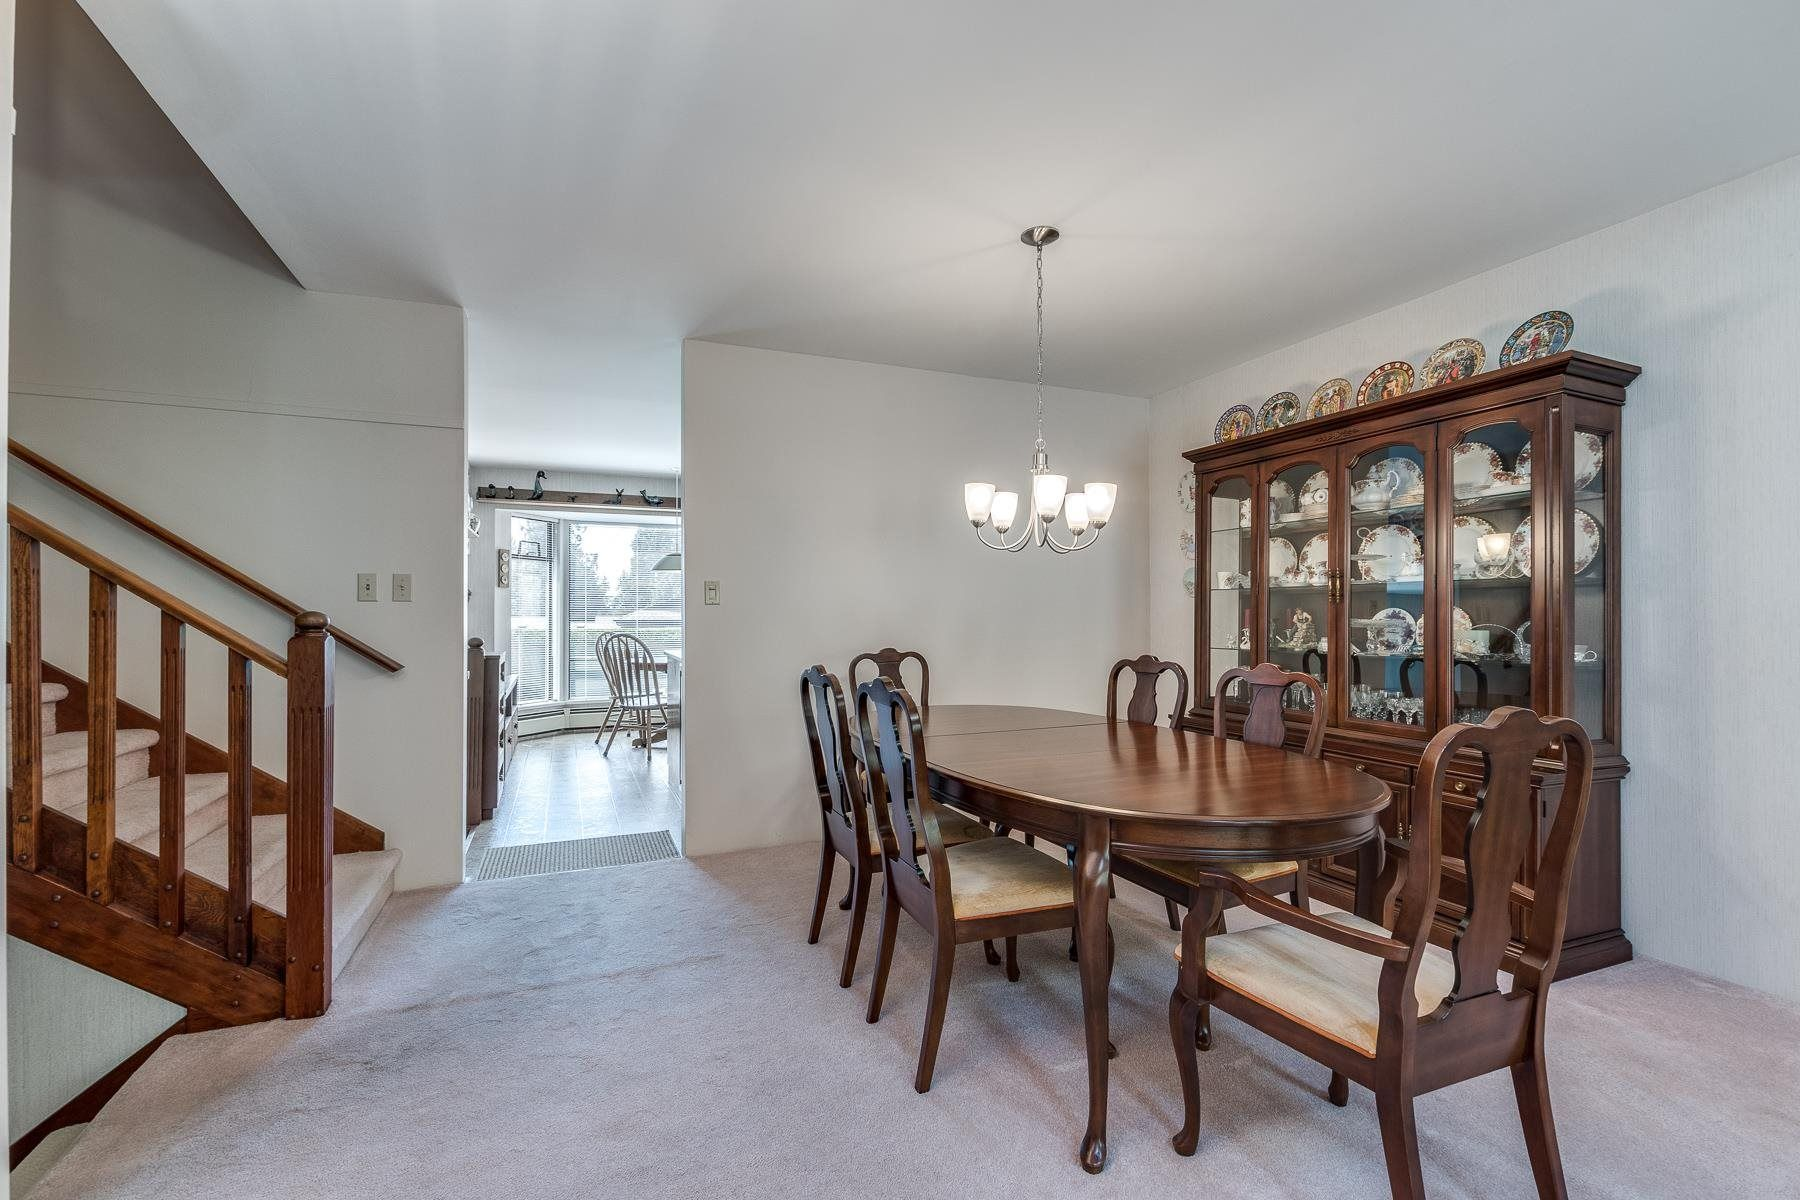 """Photo 10: Photos: 378 BALFOUR Drive in Coquitlam: Coquitlam East House for sale in """"DARTMOOR HEIGHTS"""" : MLS®# R2600428"""